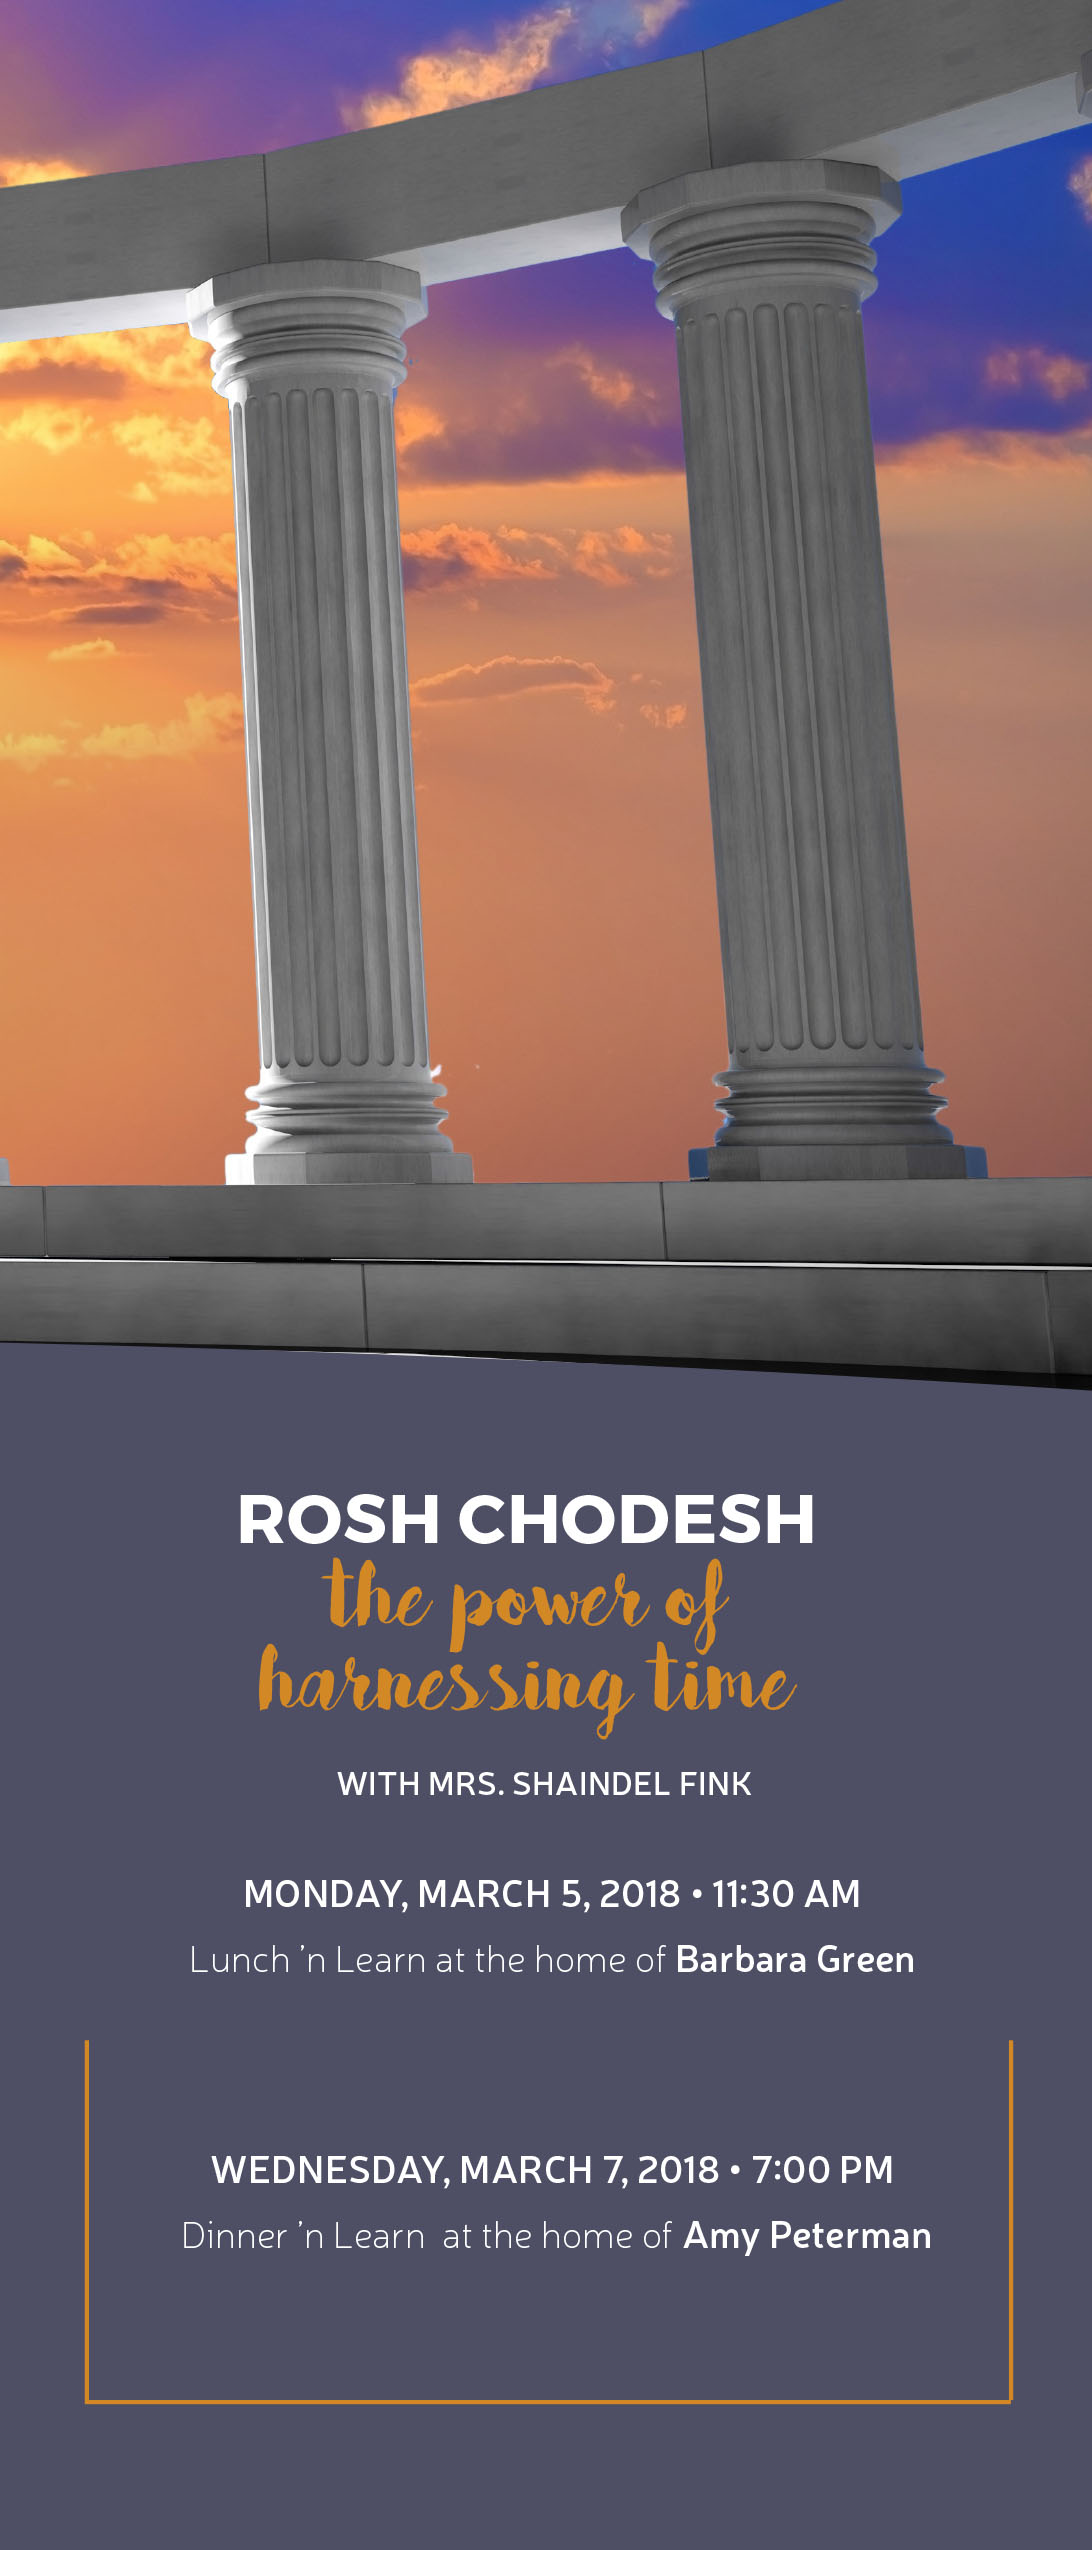 Pillars: Rosh Chodesh - The Power of Harnessing Time Lunch 'n Learn